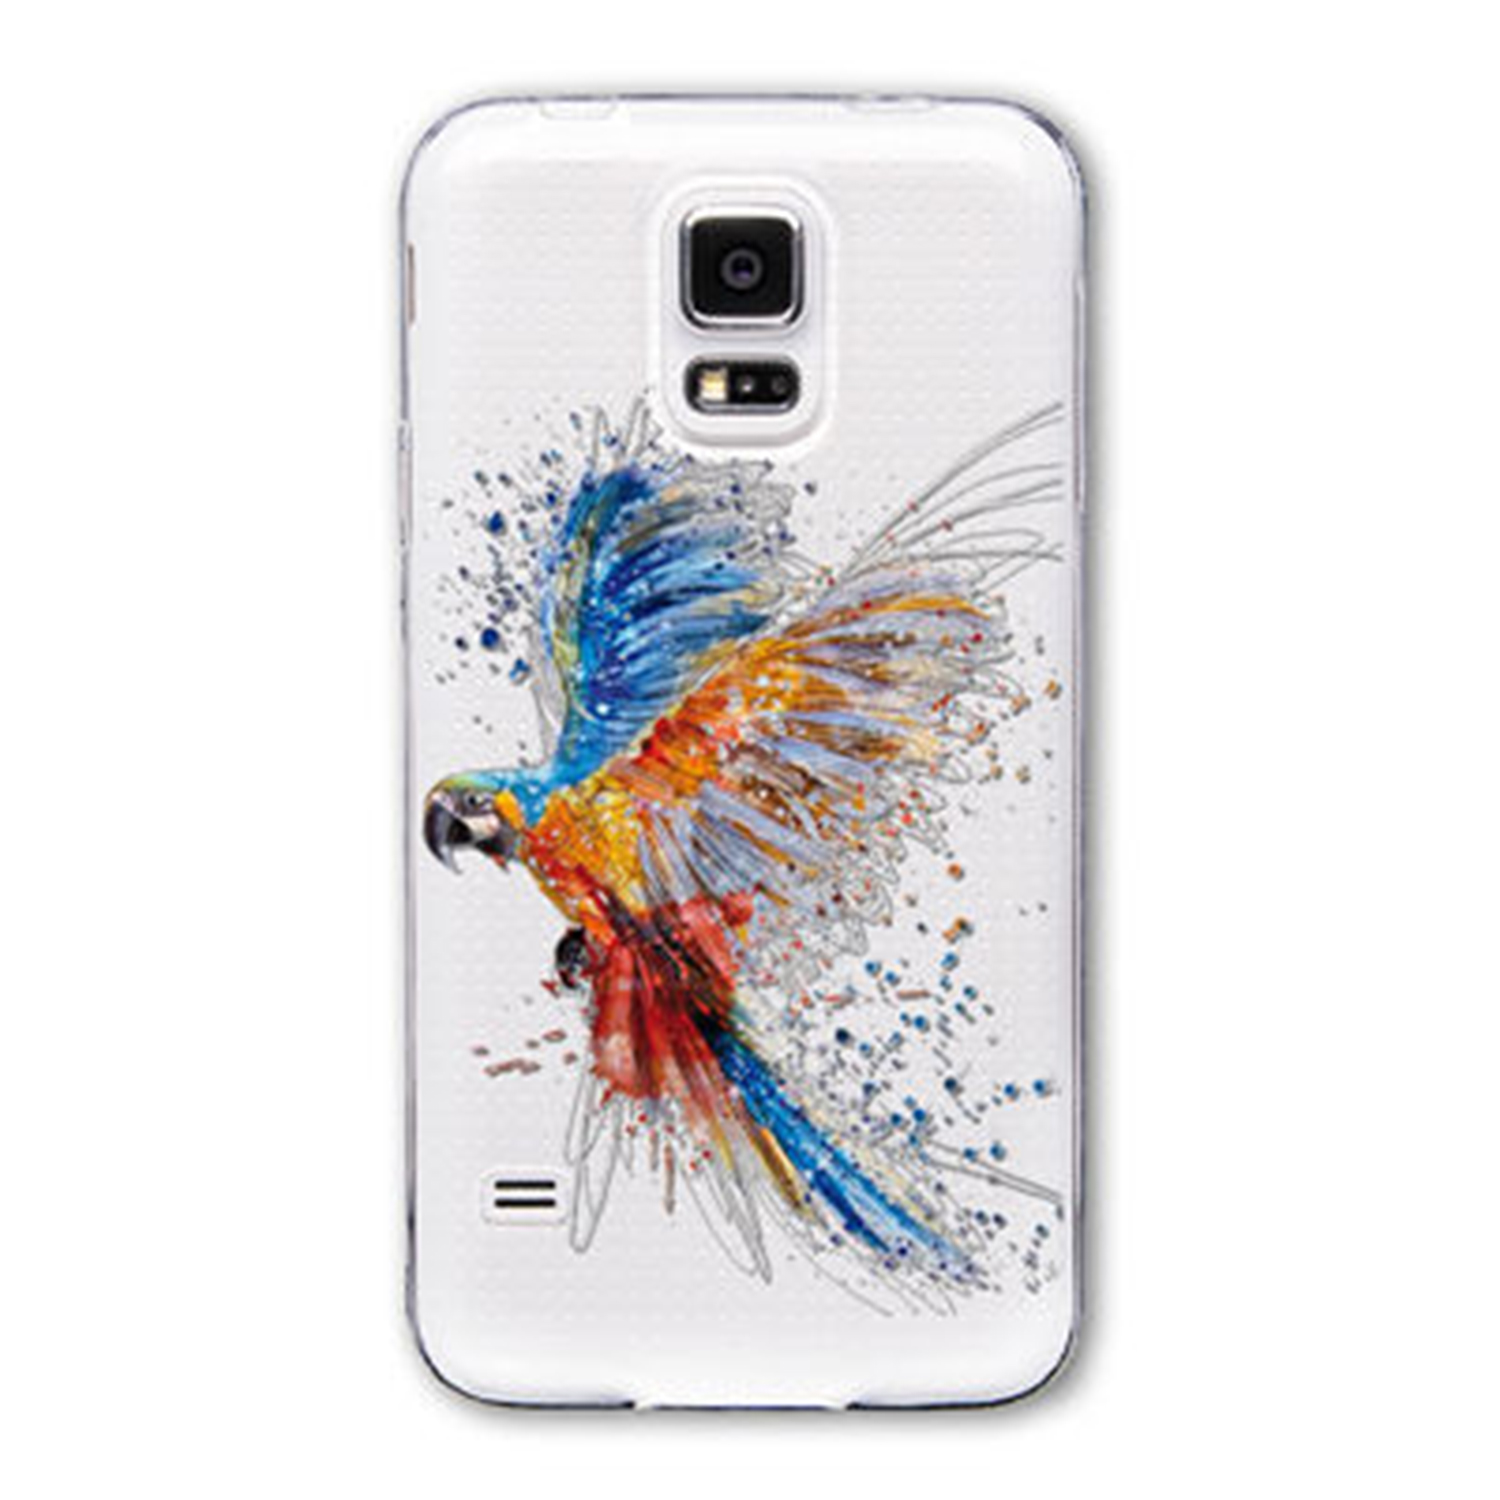 Kritzel Case Collection Galaxy S5 - Mod. #487